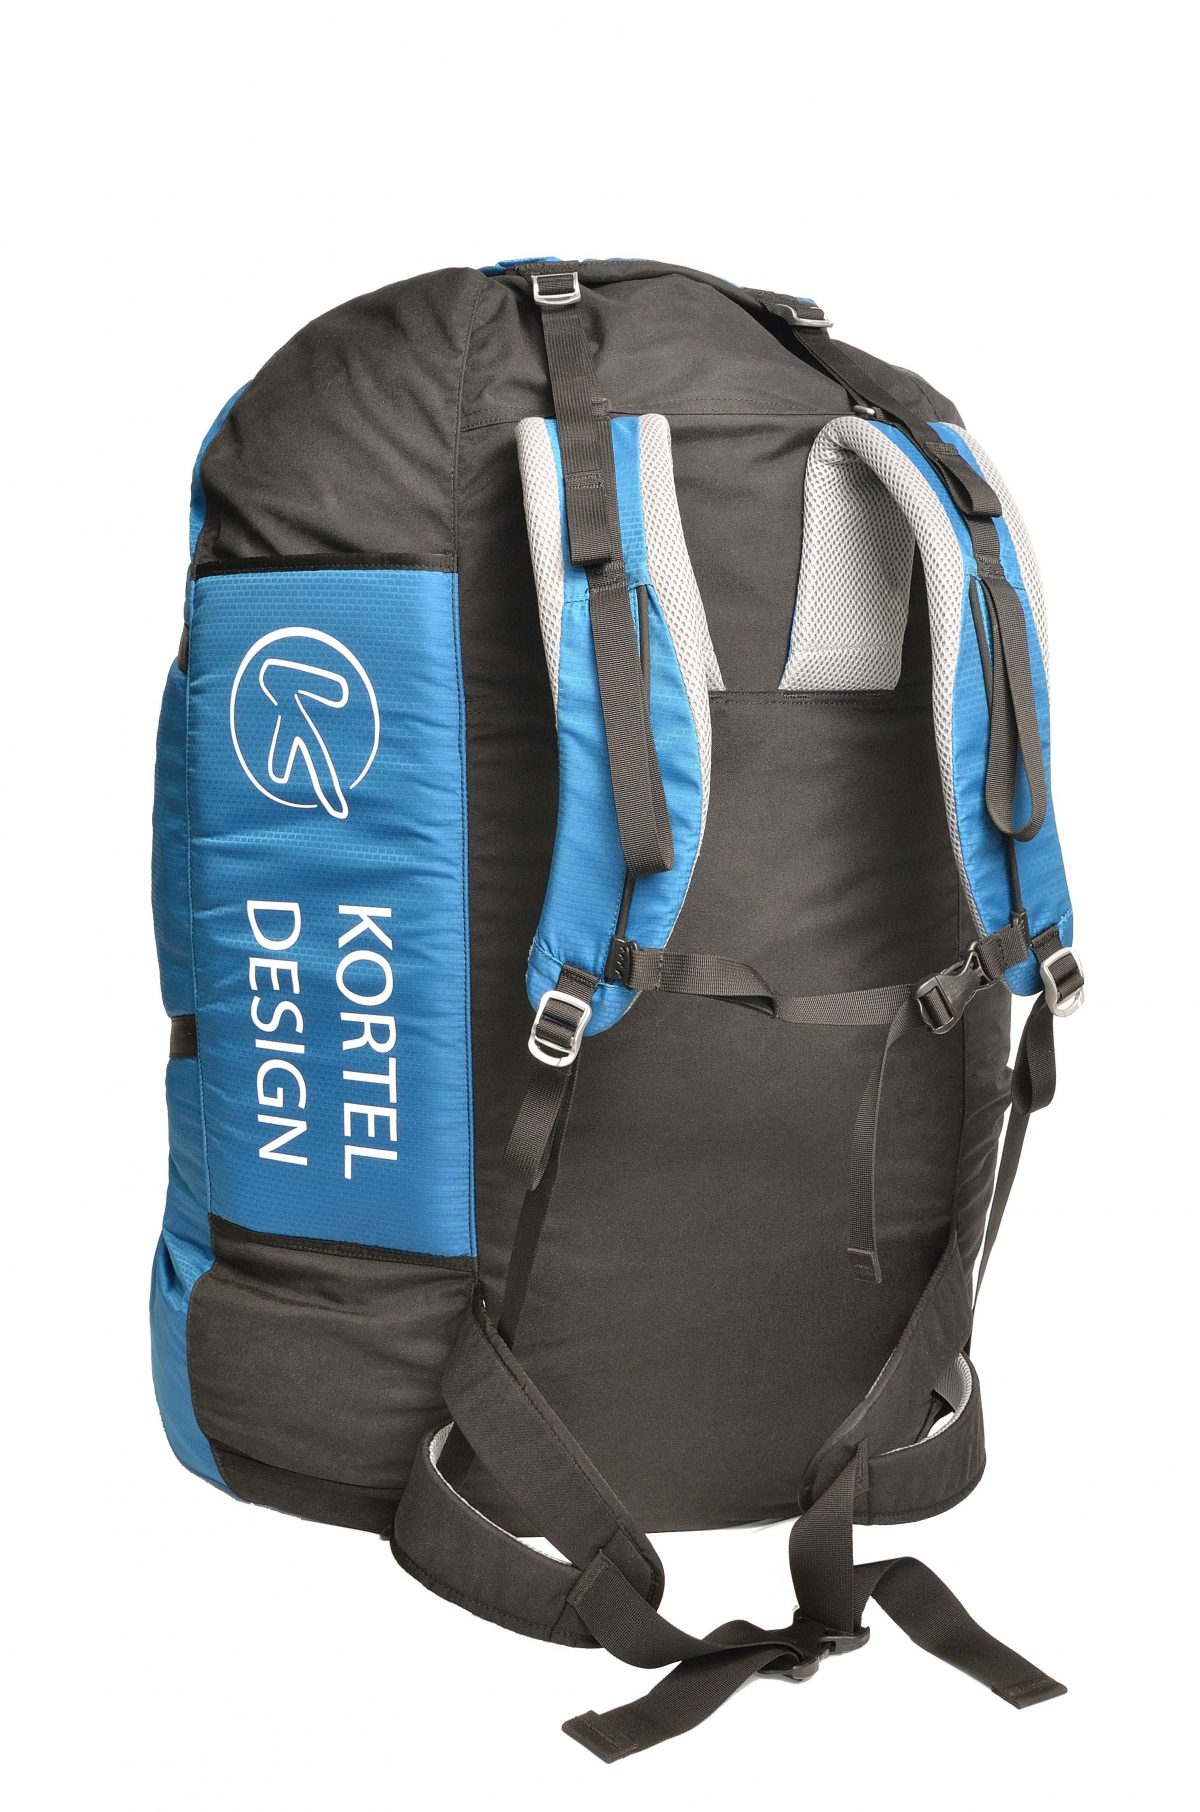 Kortel Design Tandem Bag II in South Africa by XC Paragliding